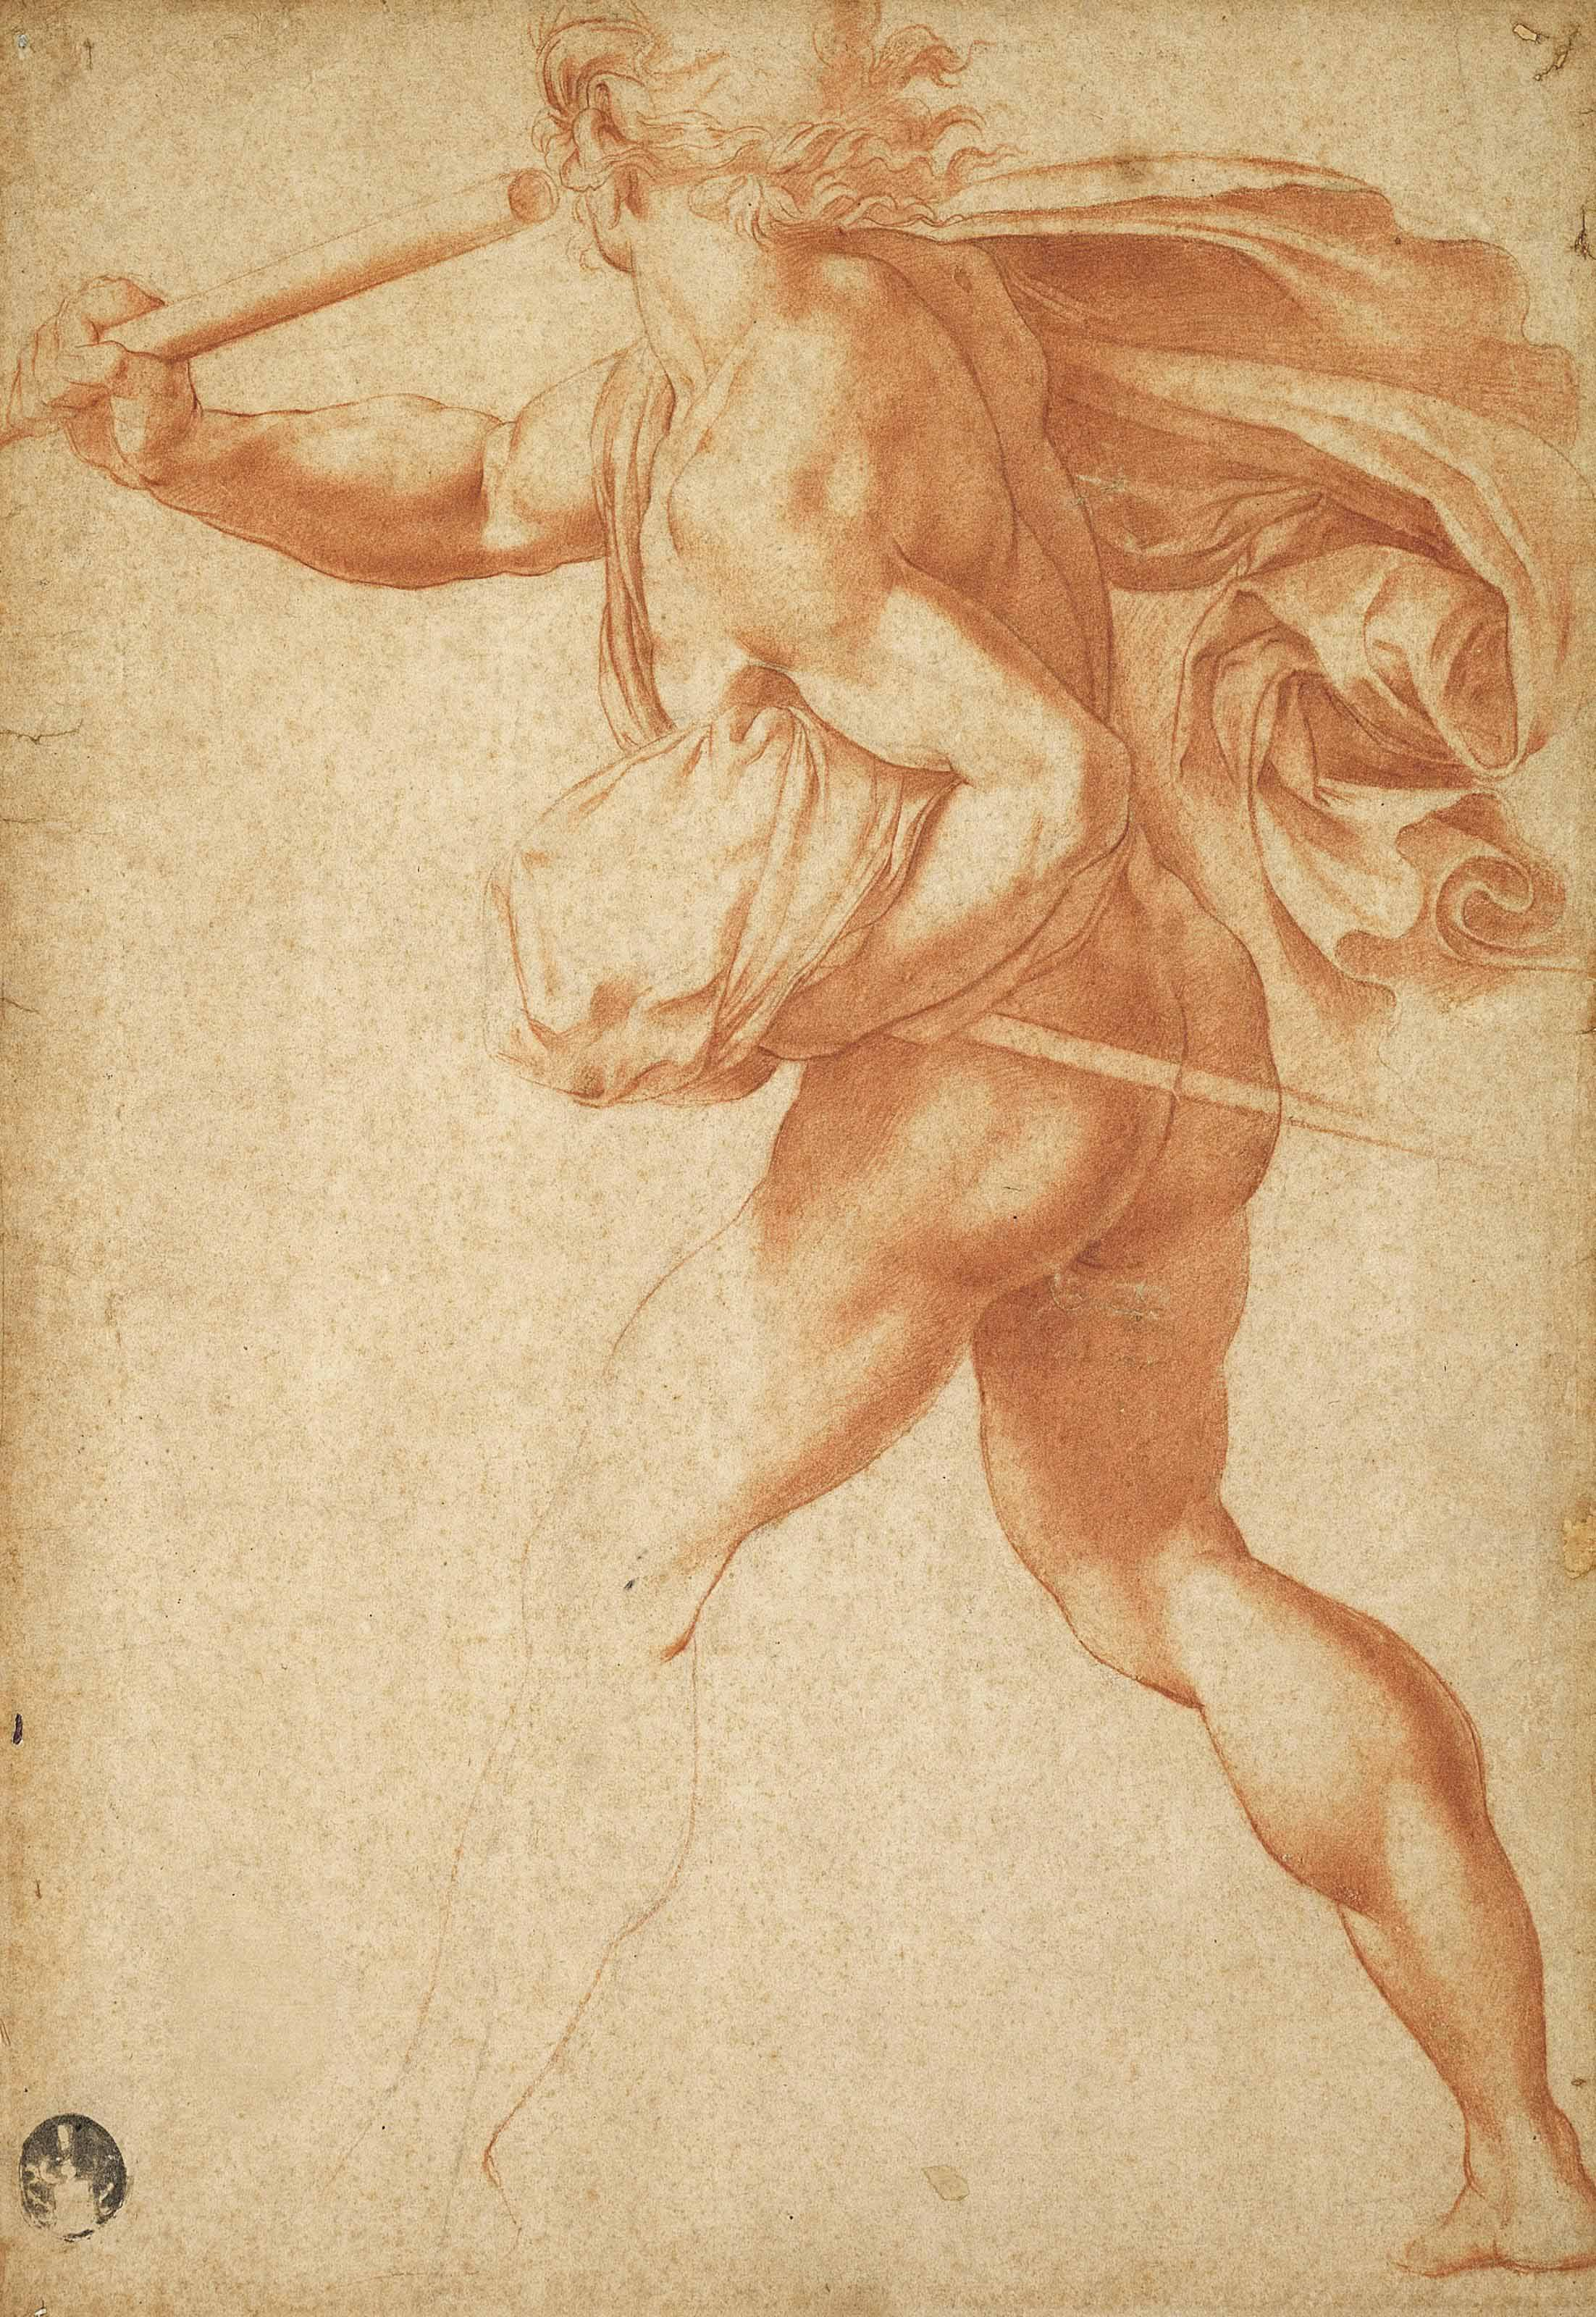 Follower of Michelangelo Buona